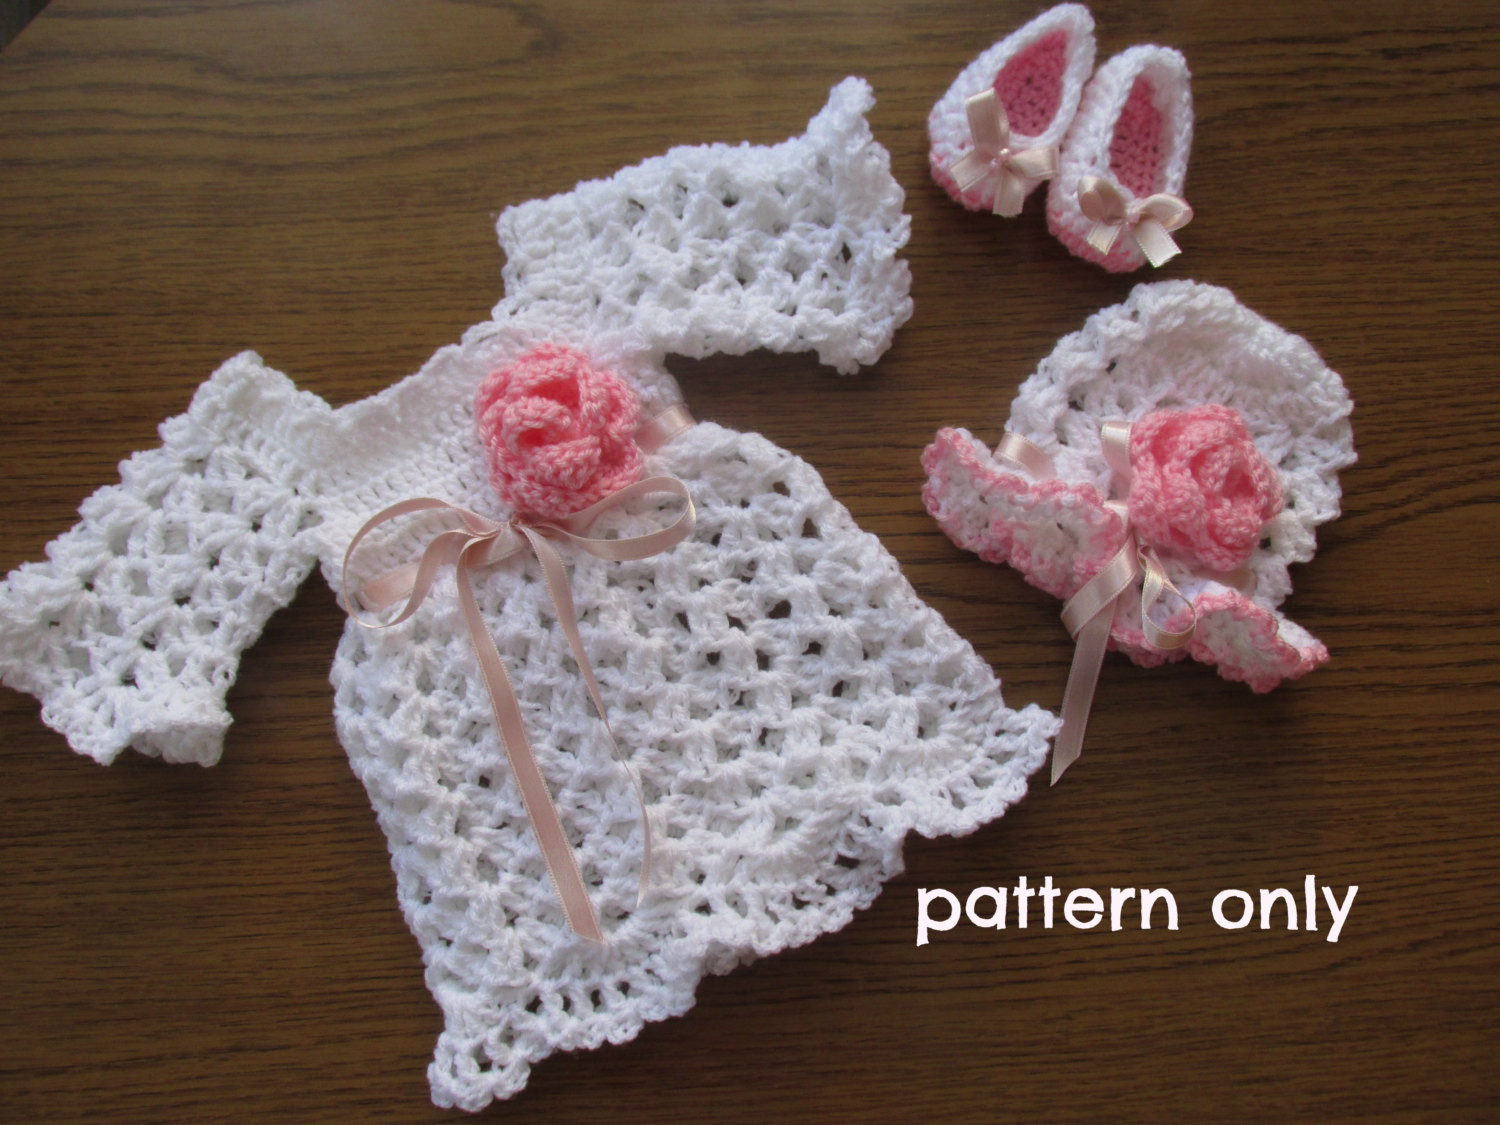 Crochet Baby Outfits Beautiful Crochet Pattern 3patterns In One Baby Dress Crochet Baby Dress Of Marvelous 44 Photos Crochet Baby Outfits